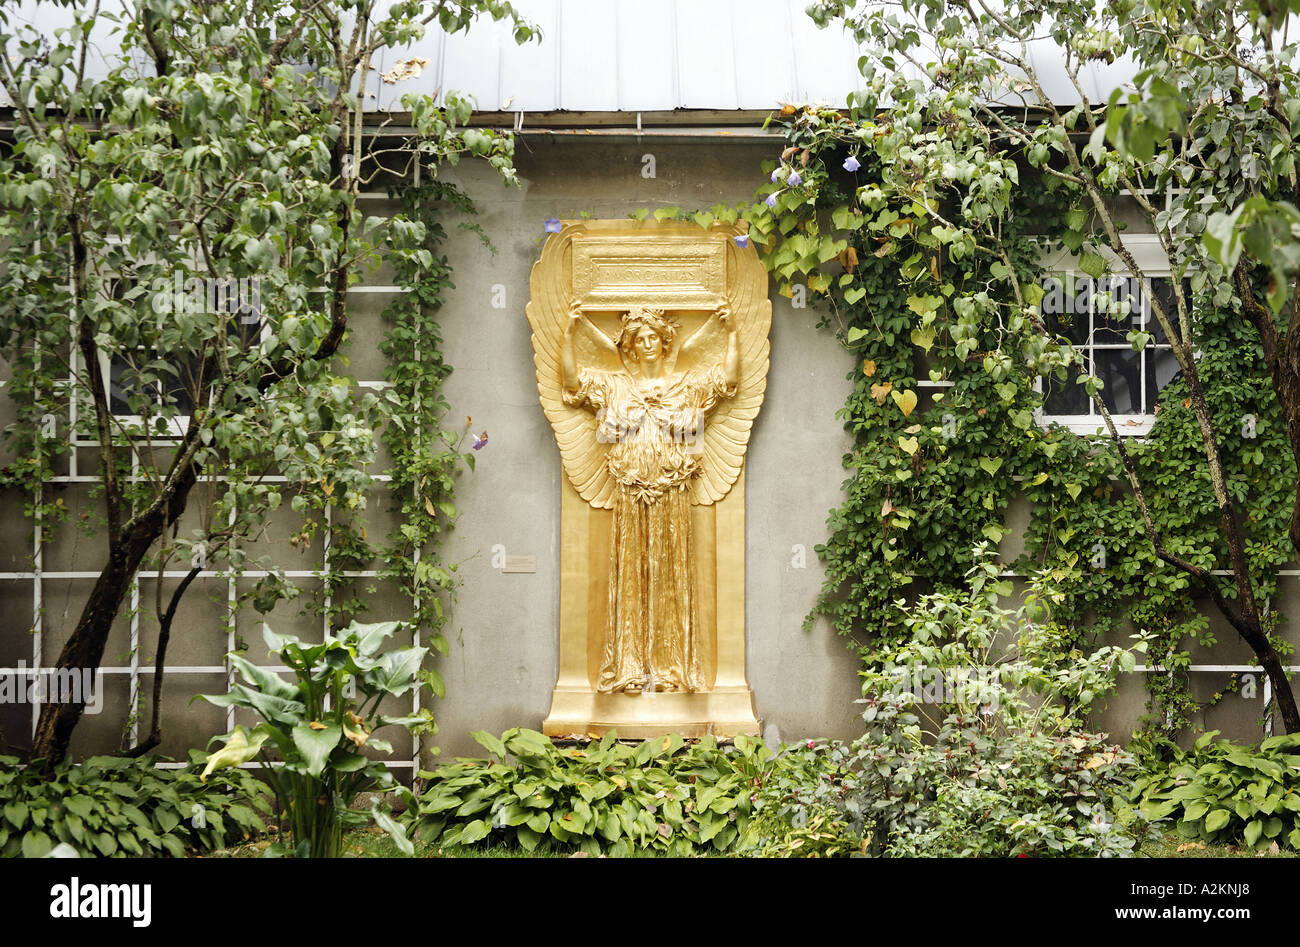 Golden relief of female angel in garden setting New Gallery atrium Saint Gaudens National Historic Site Cornish New Hampshire - Stock Image